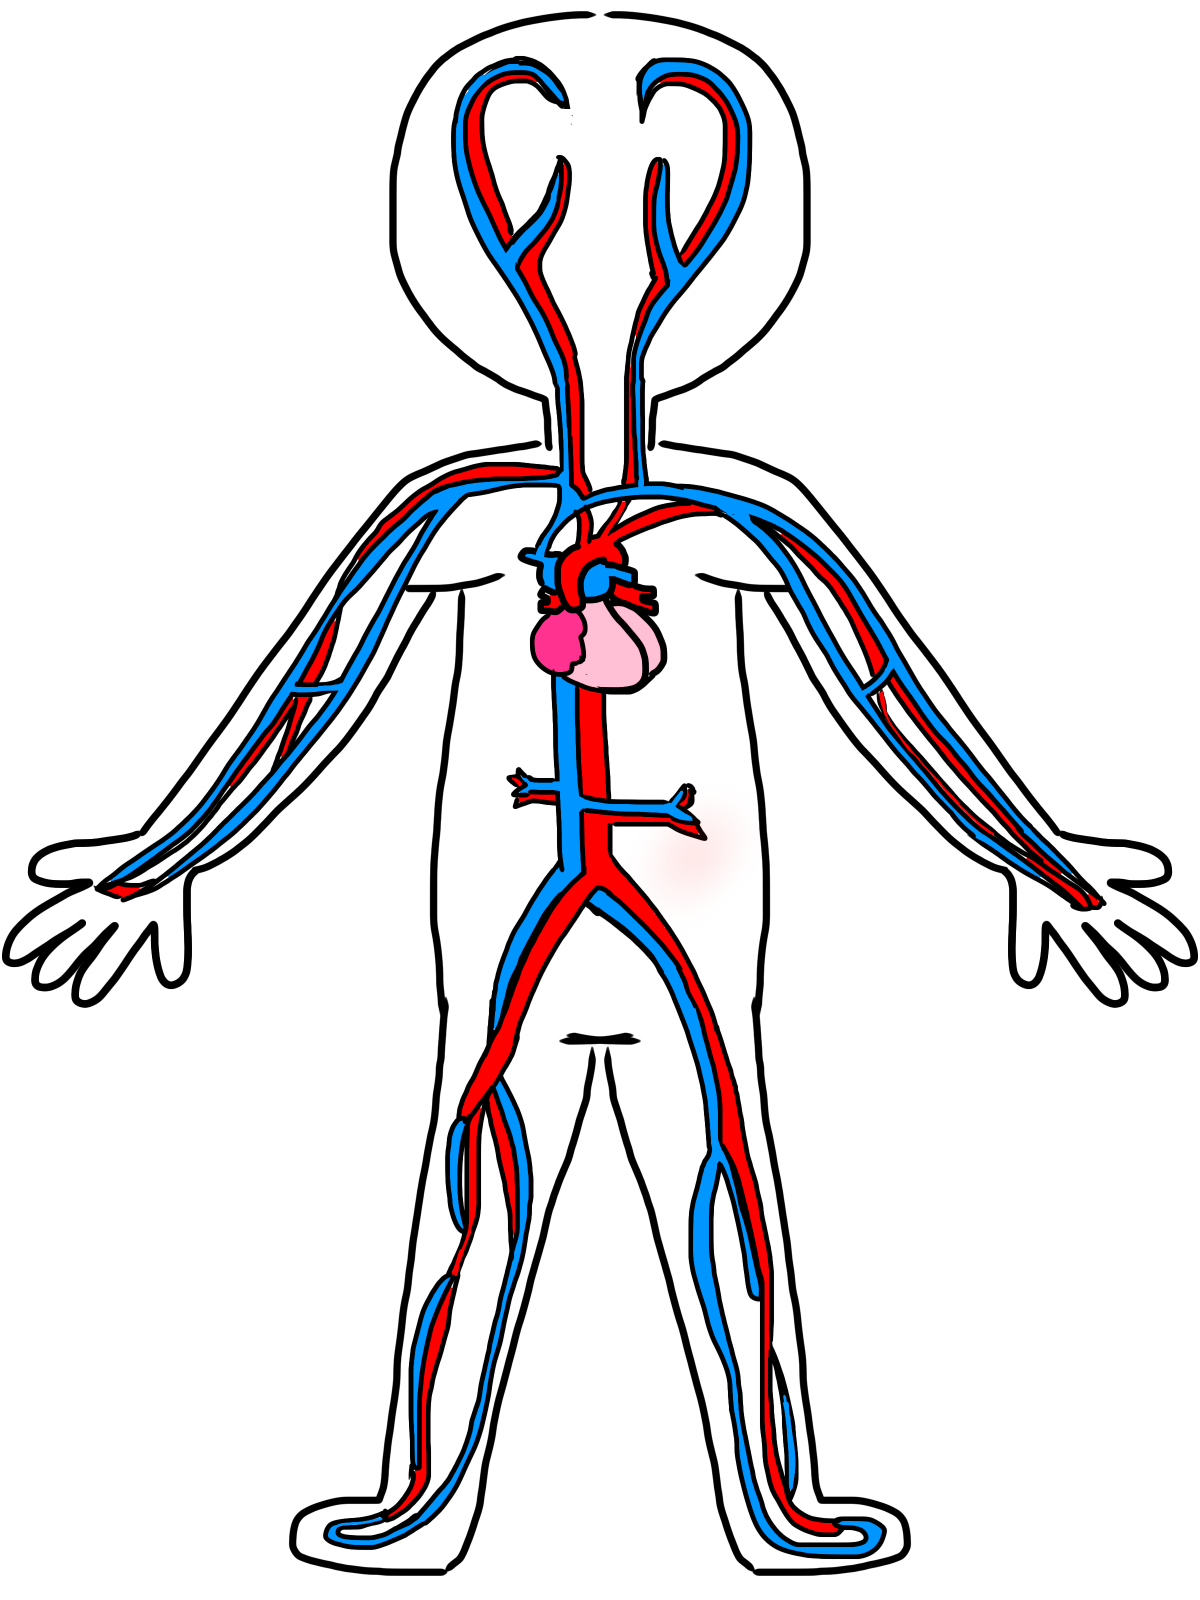 Drawing facts heart. Diagram clipart at getdrawings